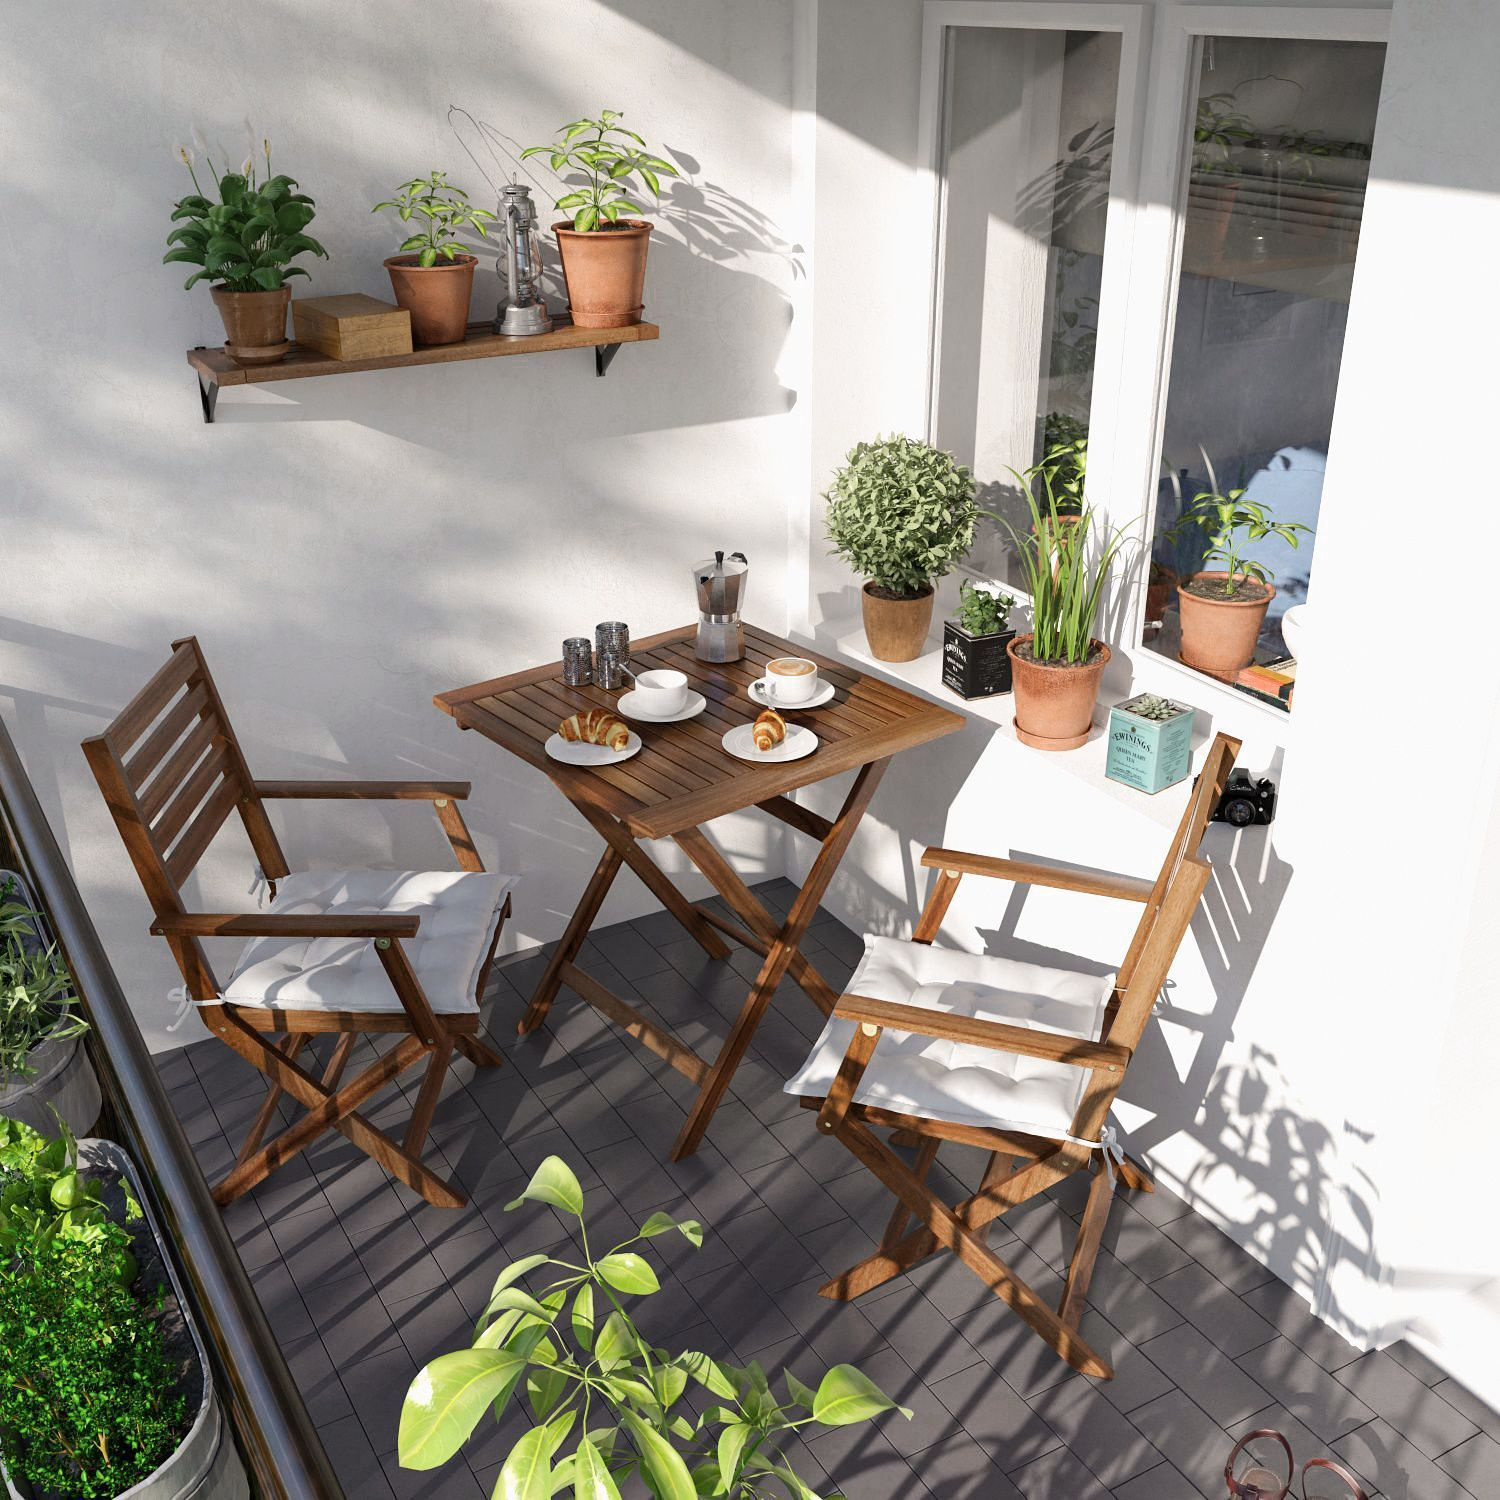 Photo of Klapptisch Mimo #Balcony Garden #Balcony Garden apartment #Balcony Garden ideas …